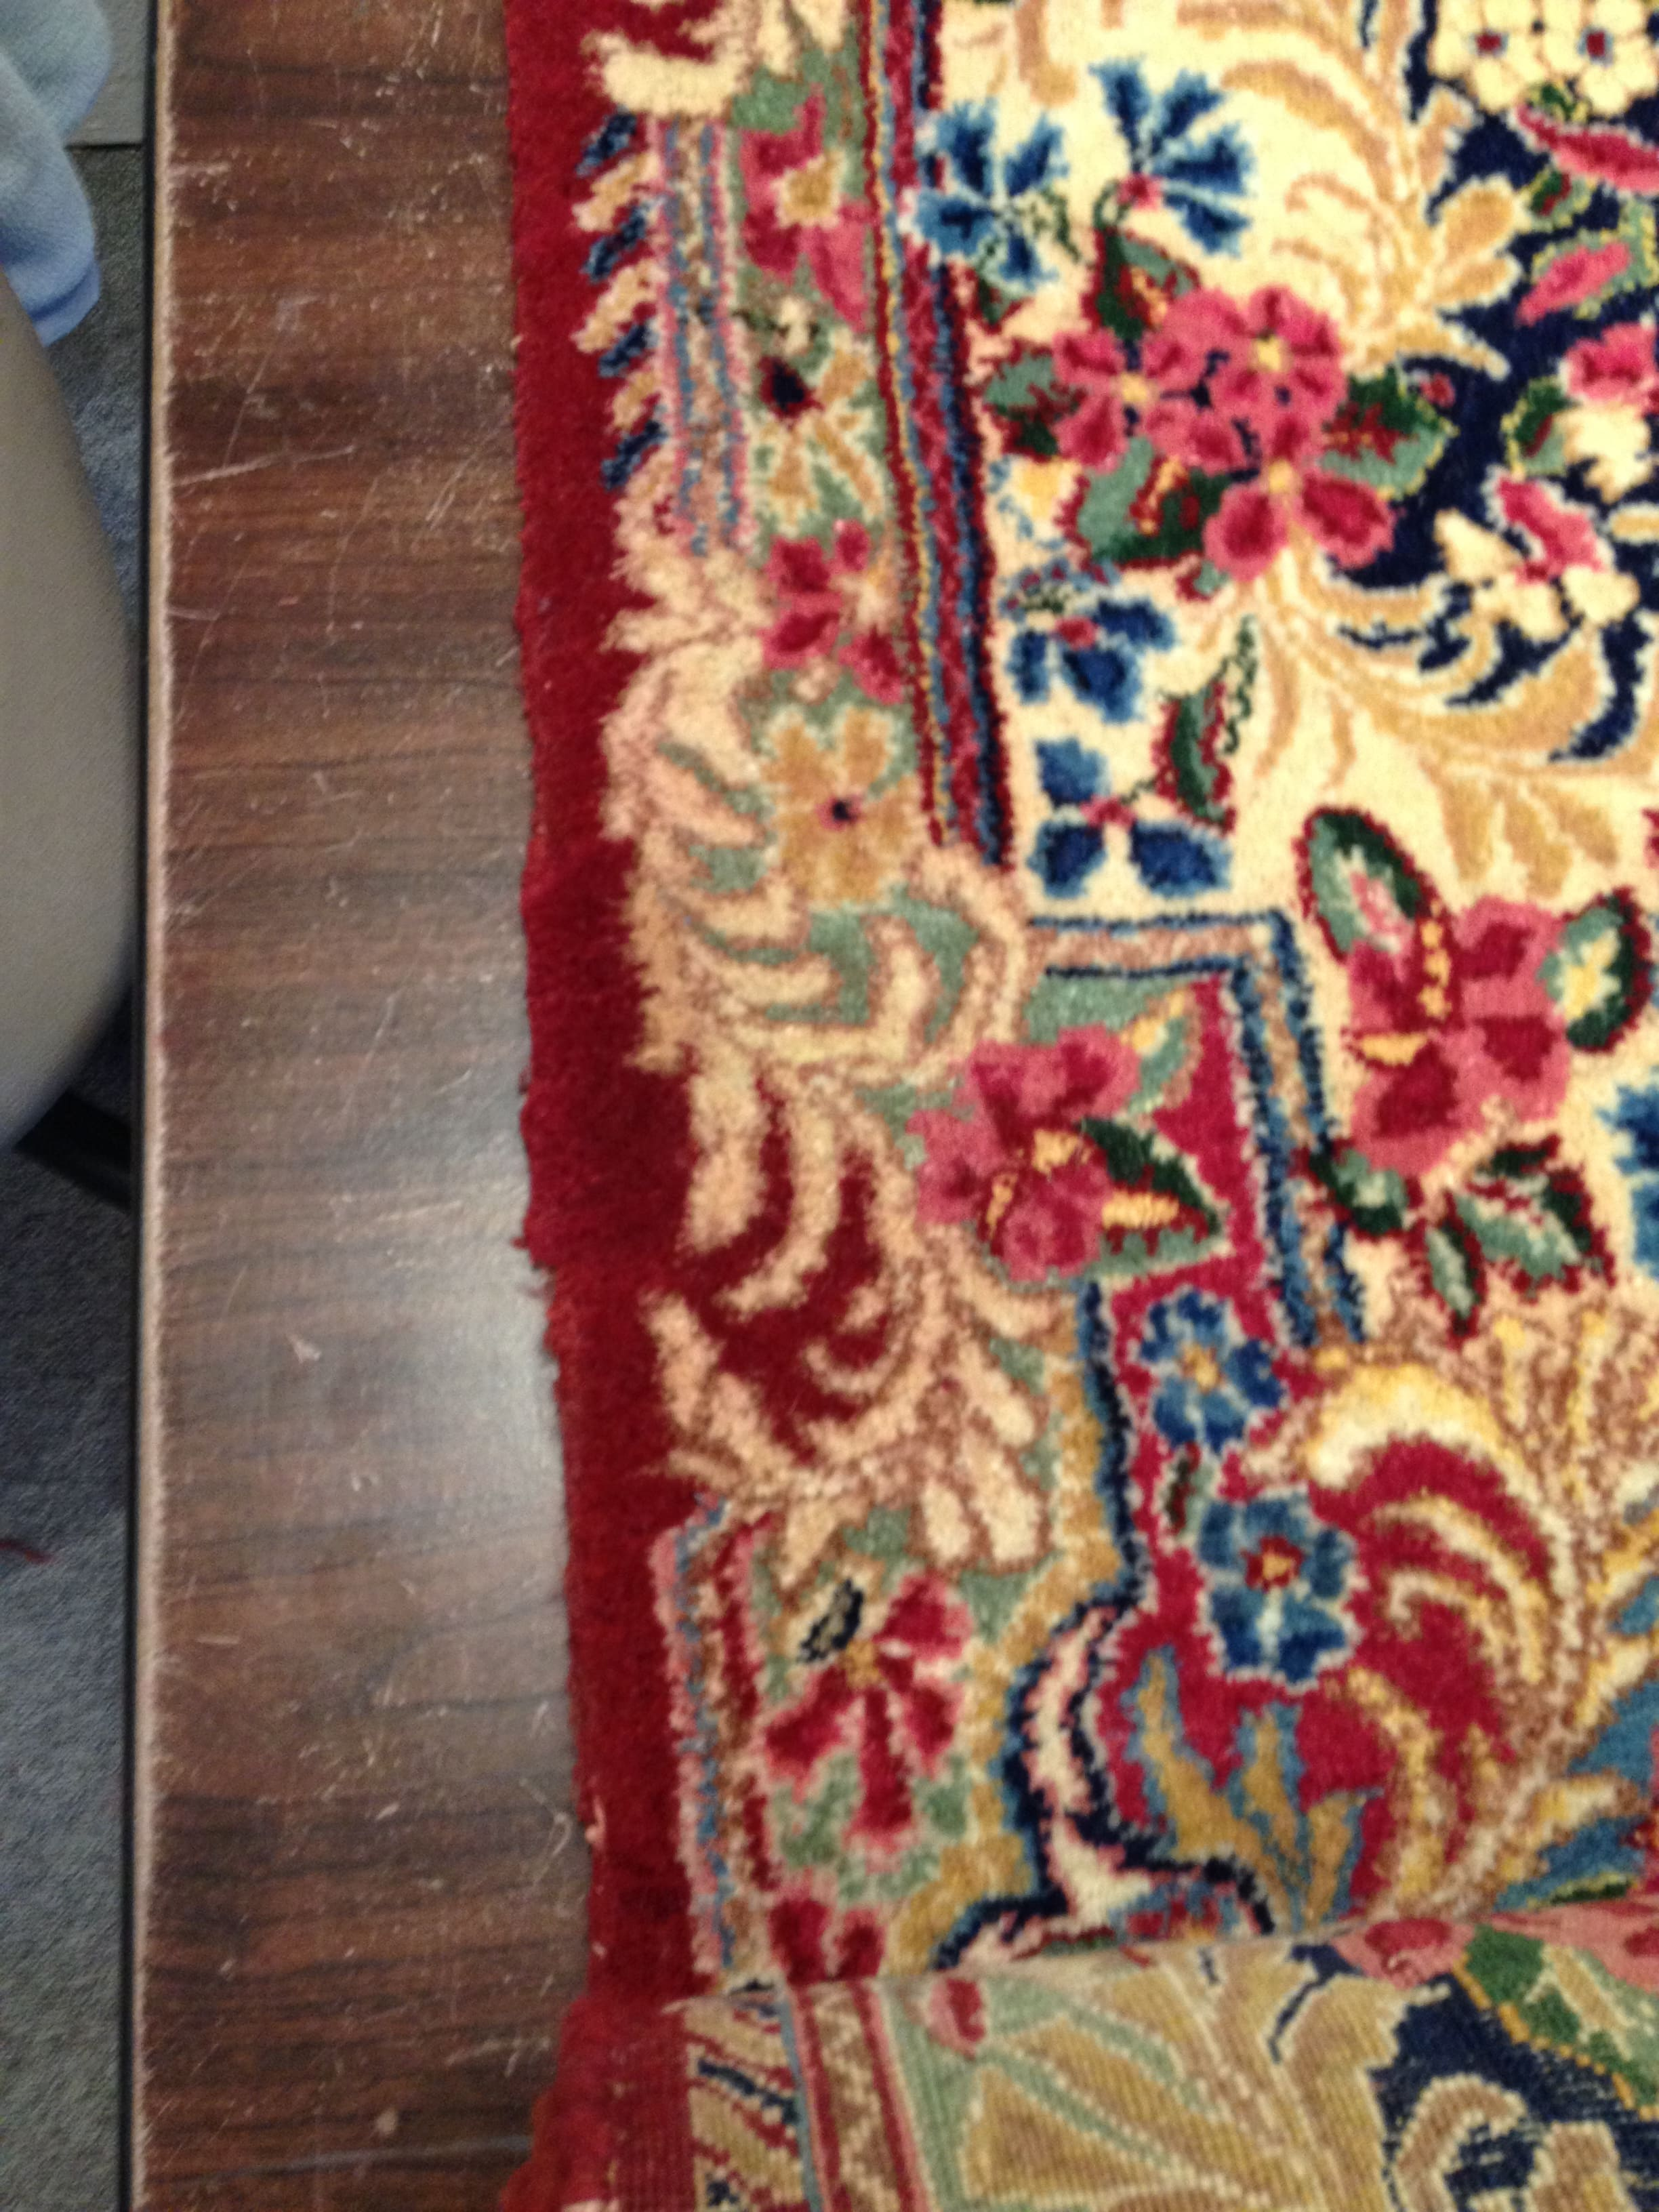 Rug repair done right